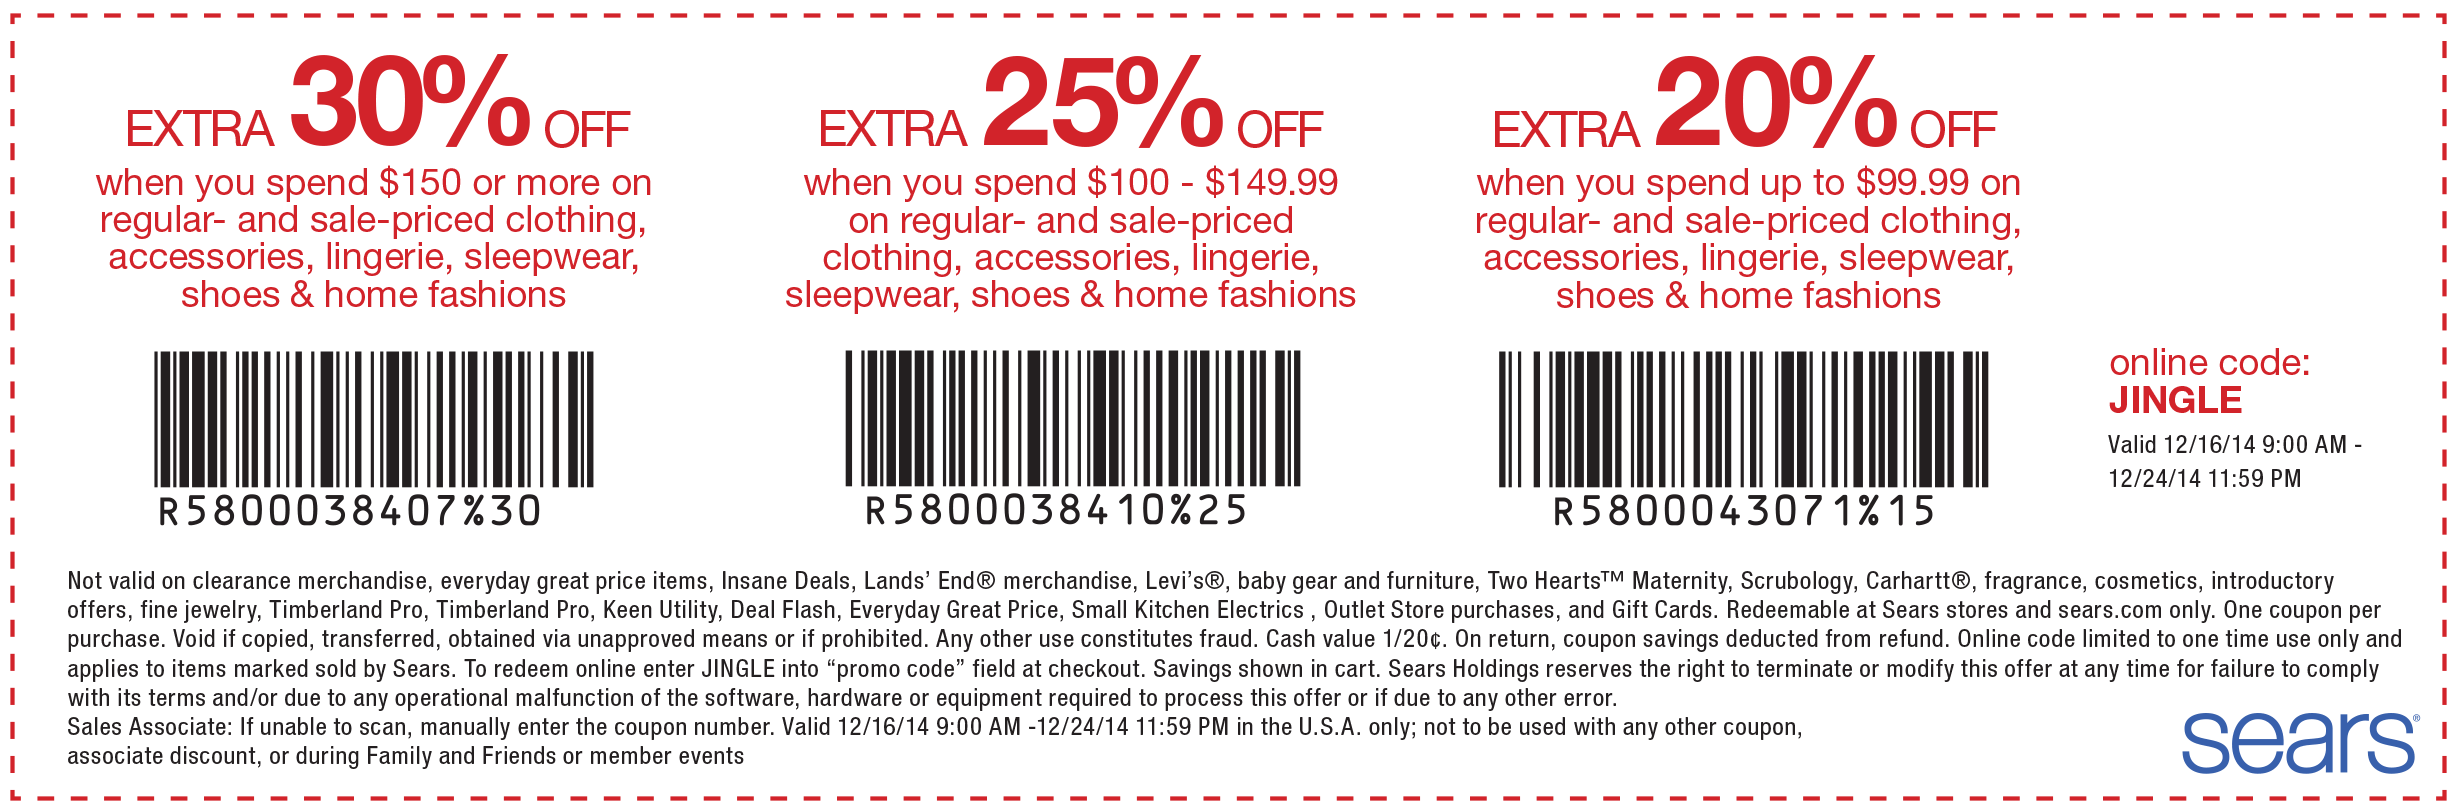 Coupon codes sears